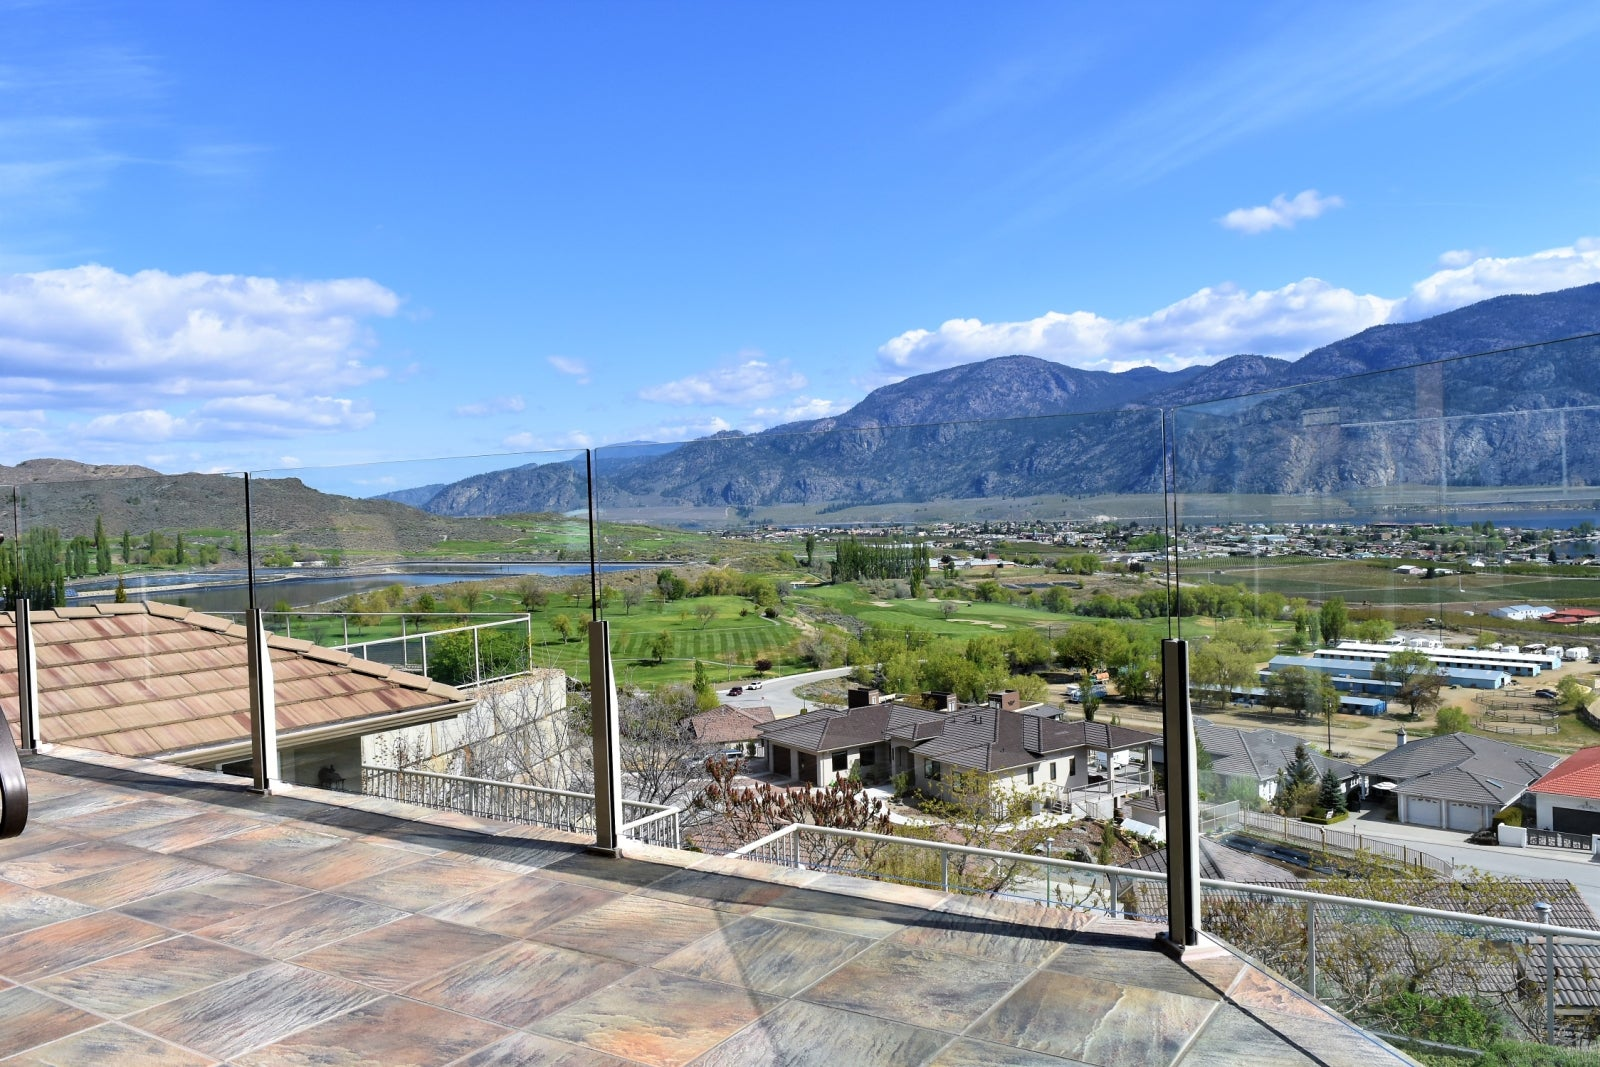 11715 Olympic View Drive - Osoyoos Single Family for sale, 4 Bedrooms (176846) #14